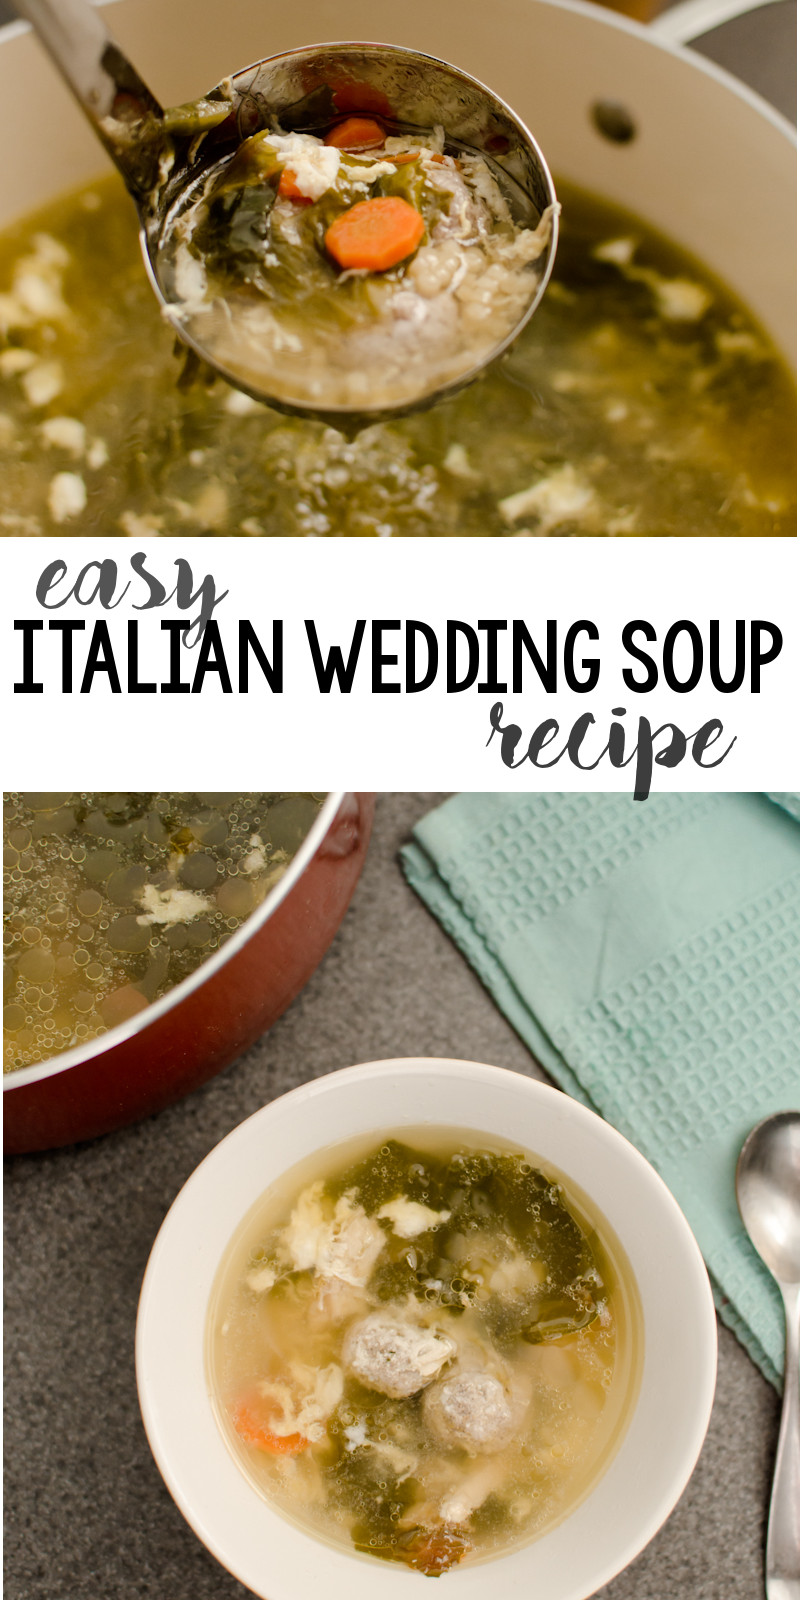 Italian Wedding Soup Recipes Easy  Easy Italian Wedding Soup Recipe A Grande Life